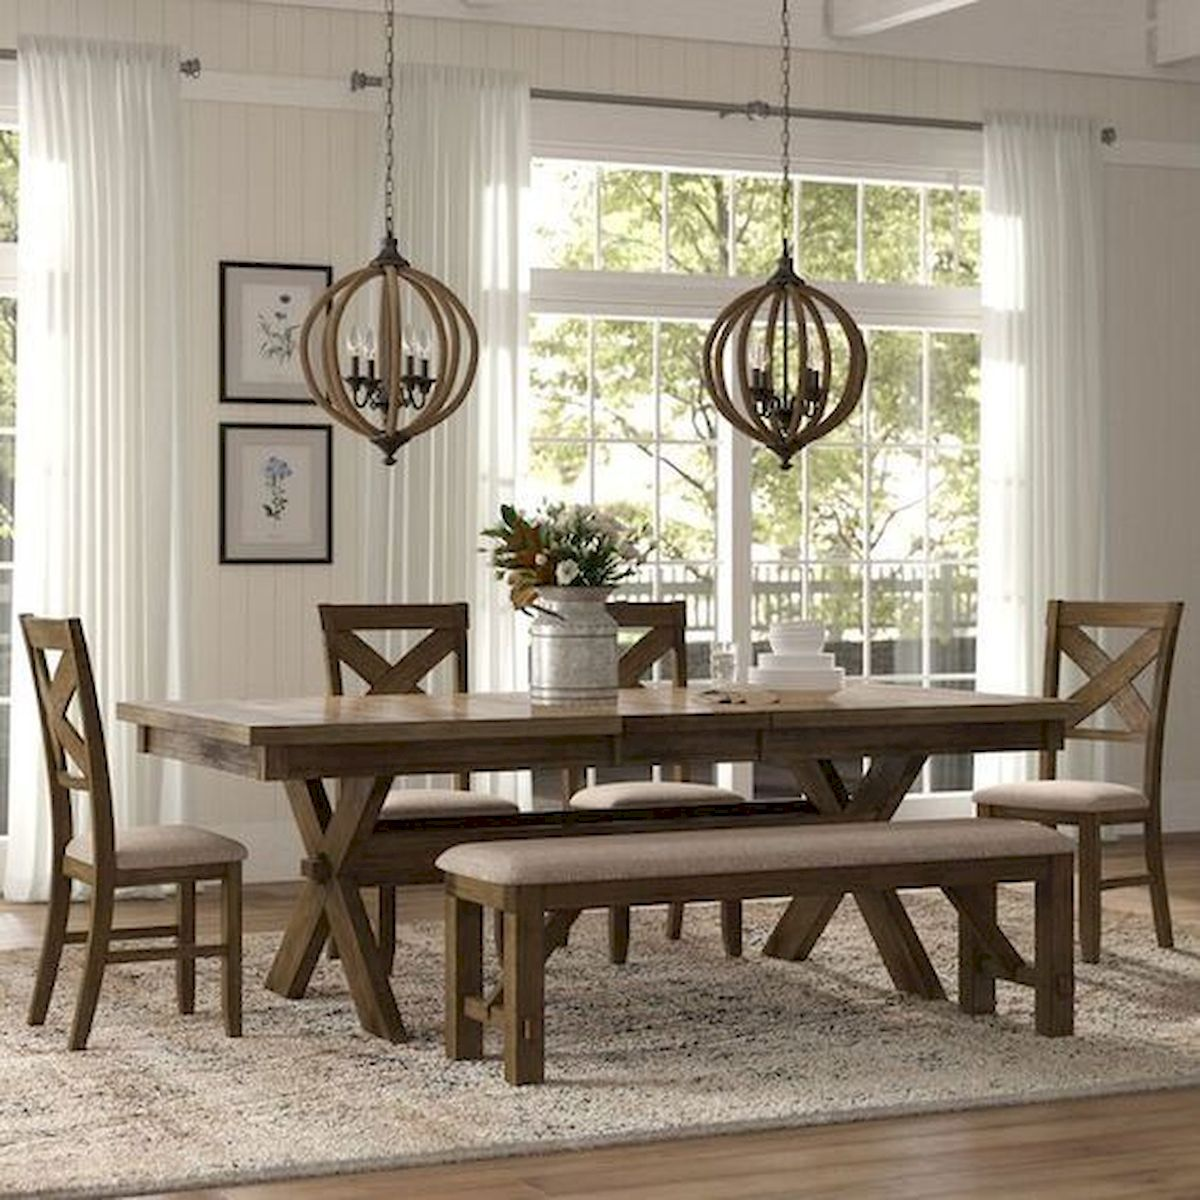 50 Nice DIY Furniture Projects for Dining Rooms Tables Design Ideas (1)